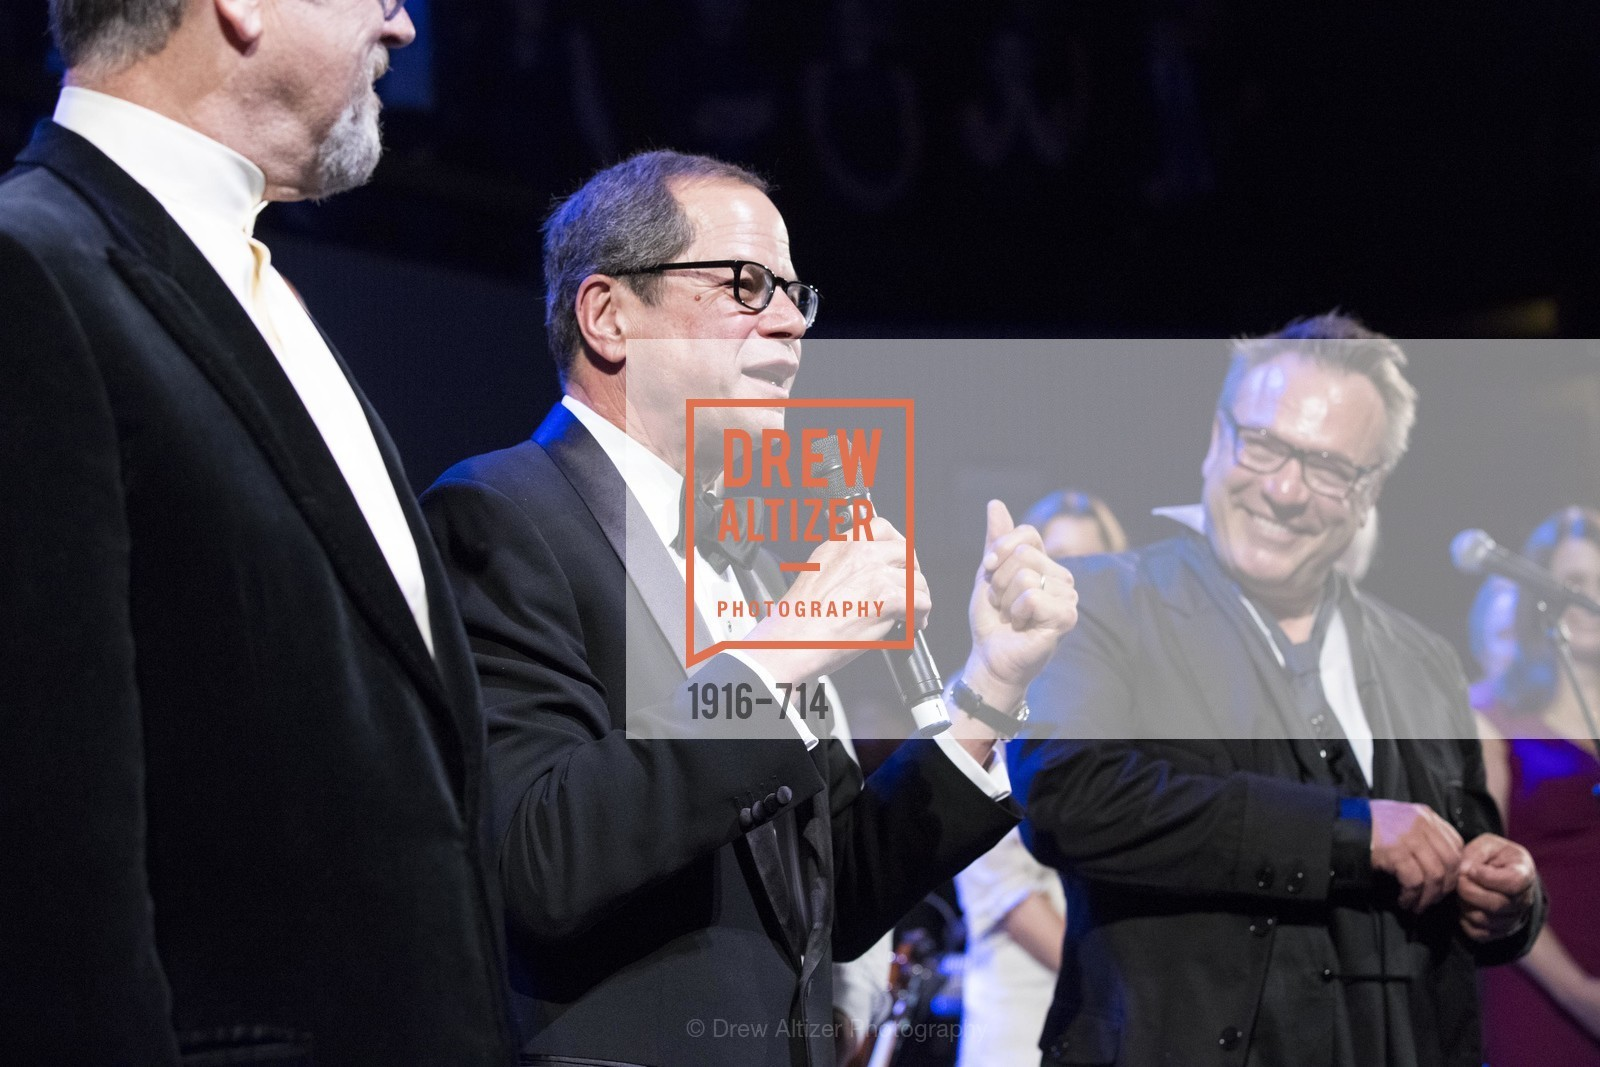 Randall Kline, Stanlee Gatti, SFJAZZ Gala 2015 Honors Joni Mitchell with Lifetime Achievement Award, US, May 9th, 2015,Drew Altizer, Drew Altizer Photography, full-service agency, private events, San Francisco photographer, photographer california